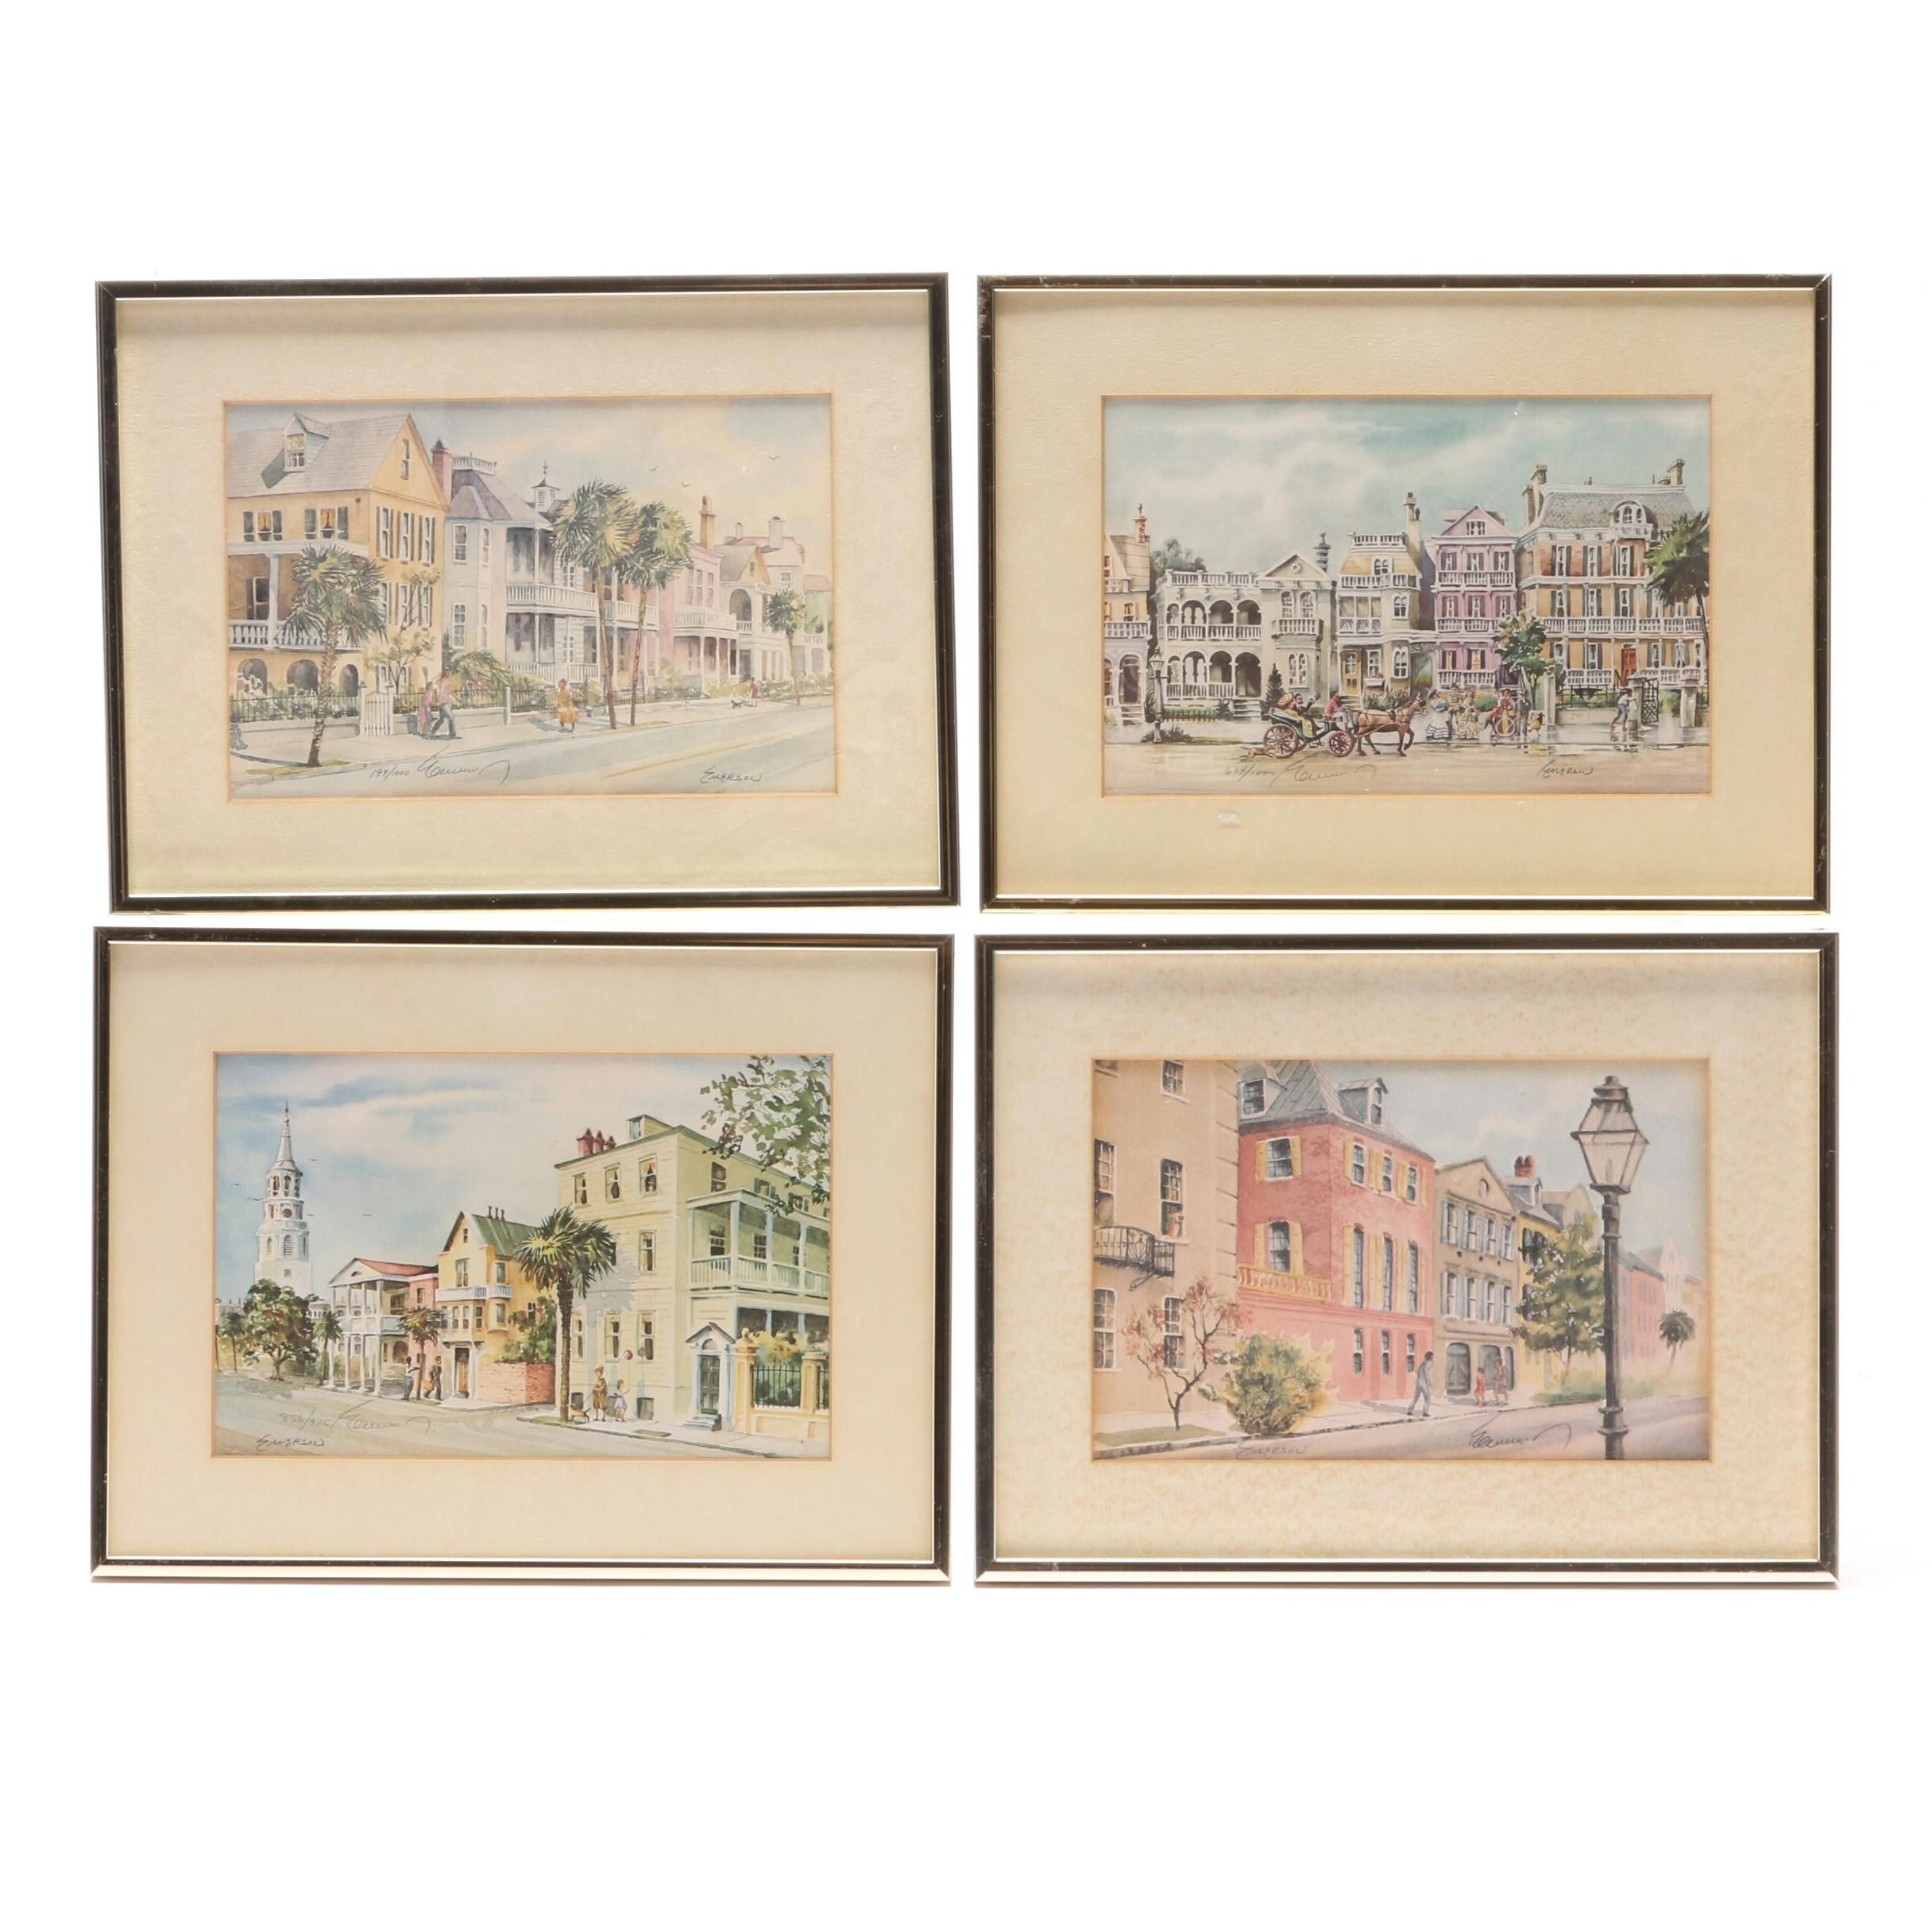 Edward Emerson Limited Edition Offset Lithographs